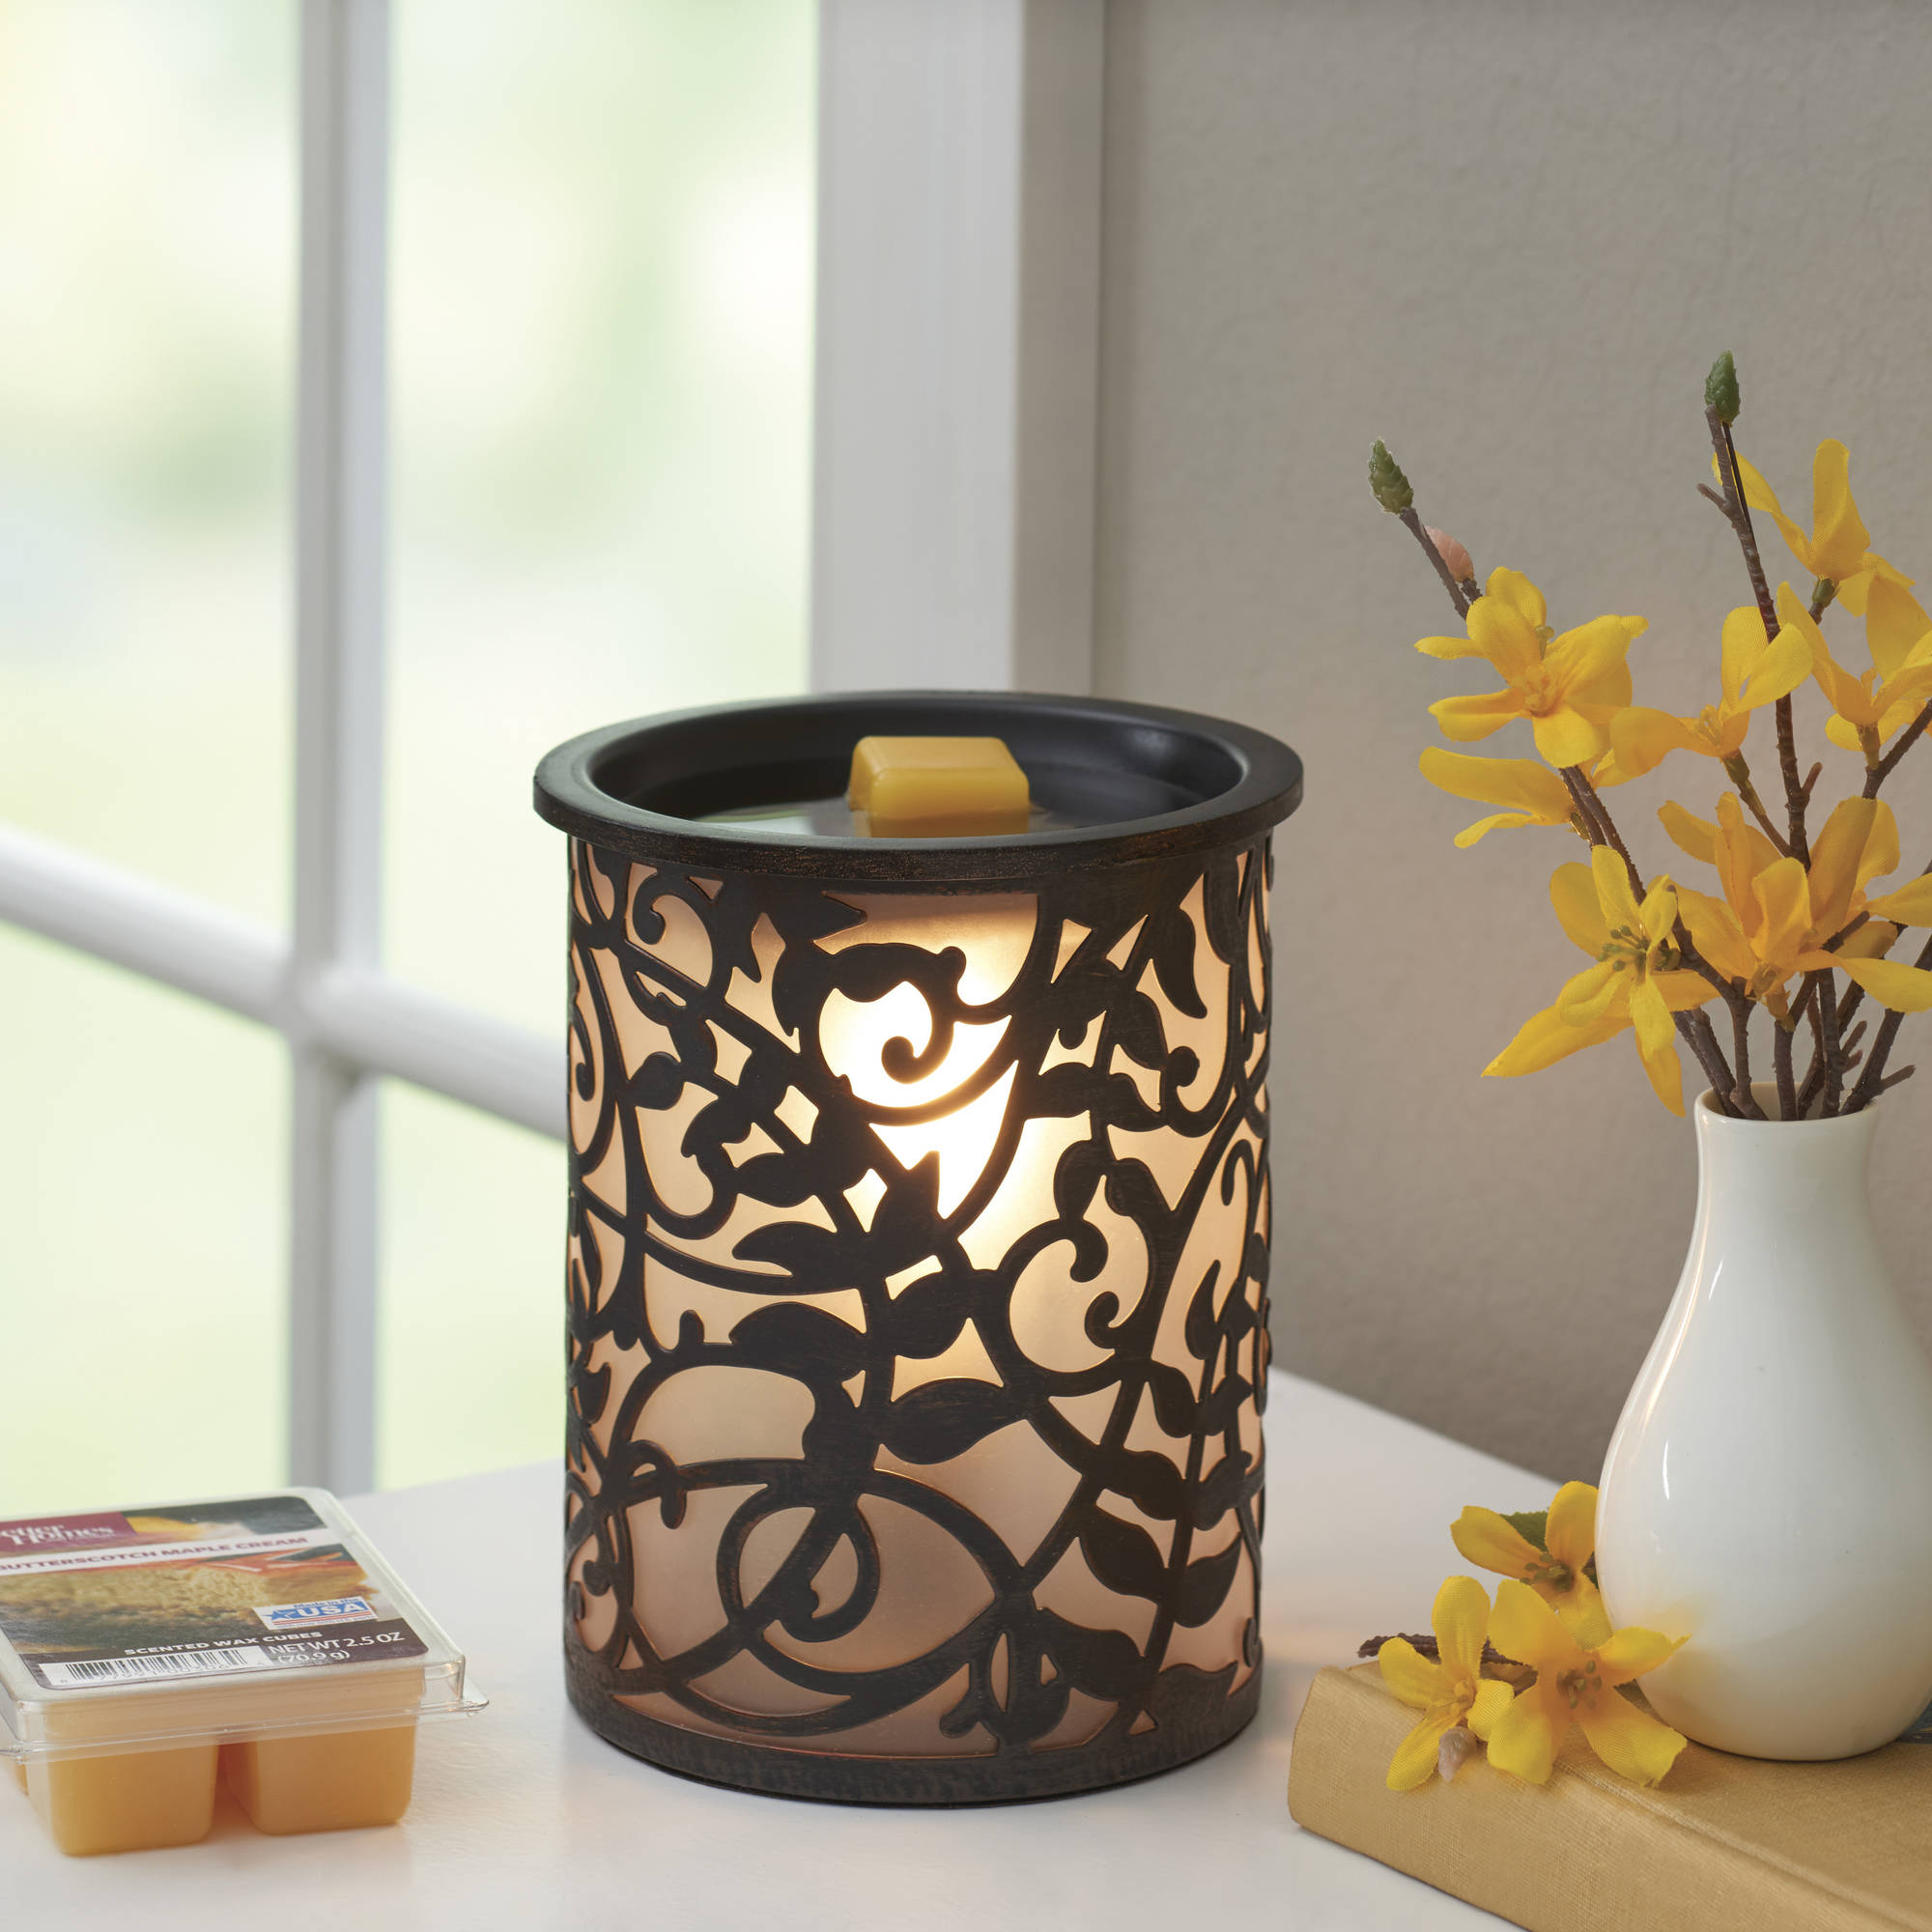 Better Homes and Gardens Wax Warmer Set, Vines